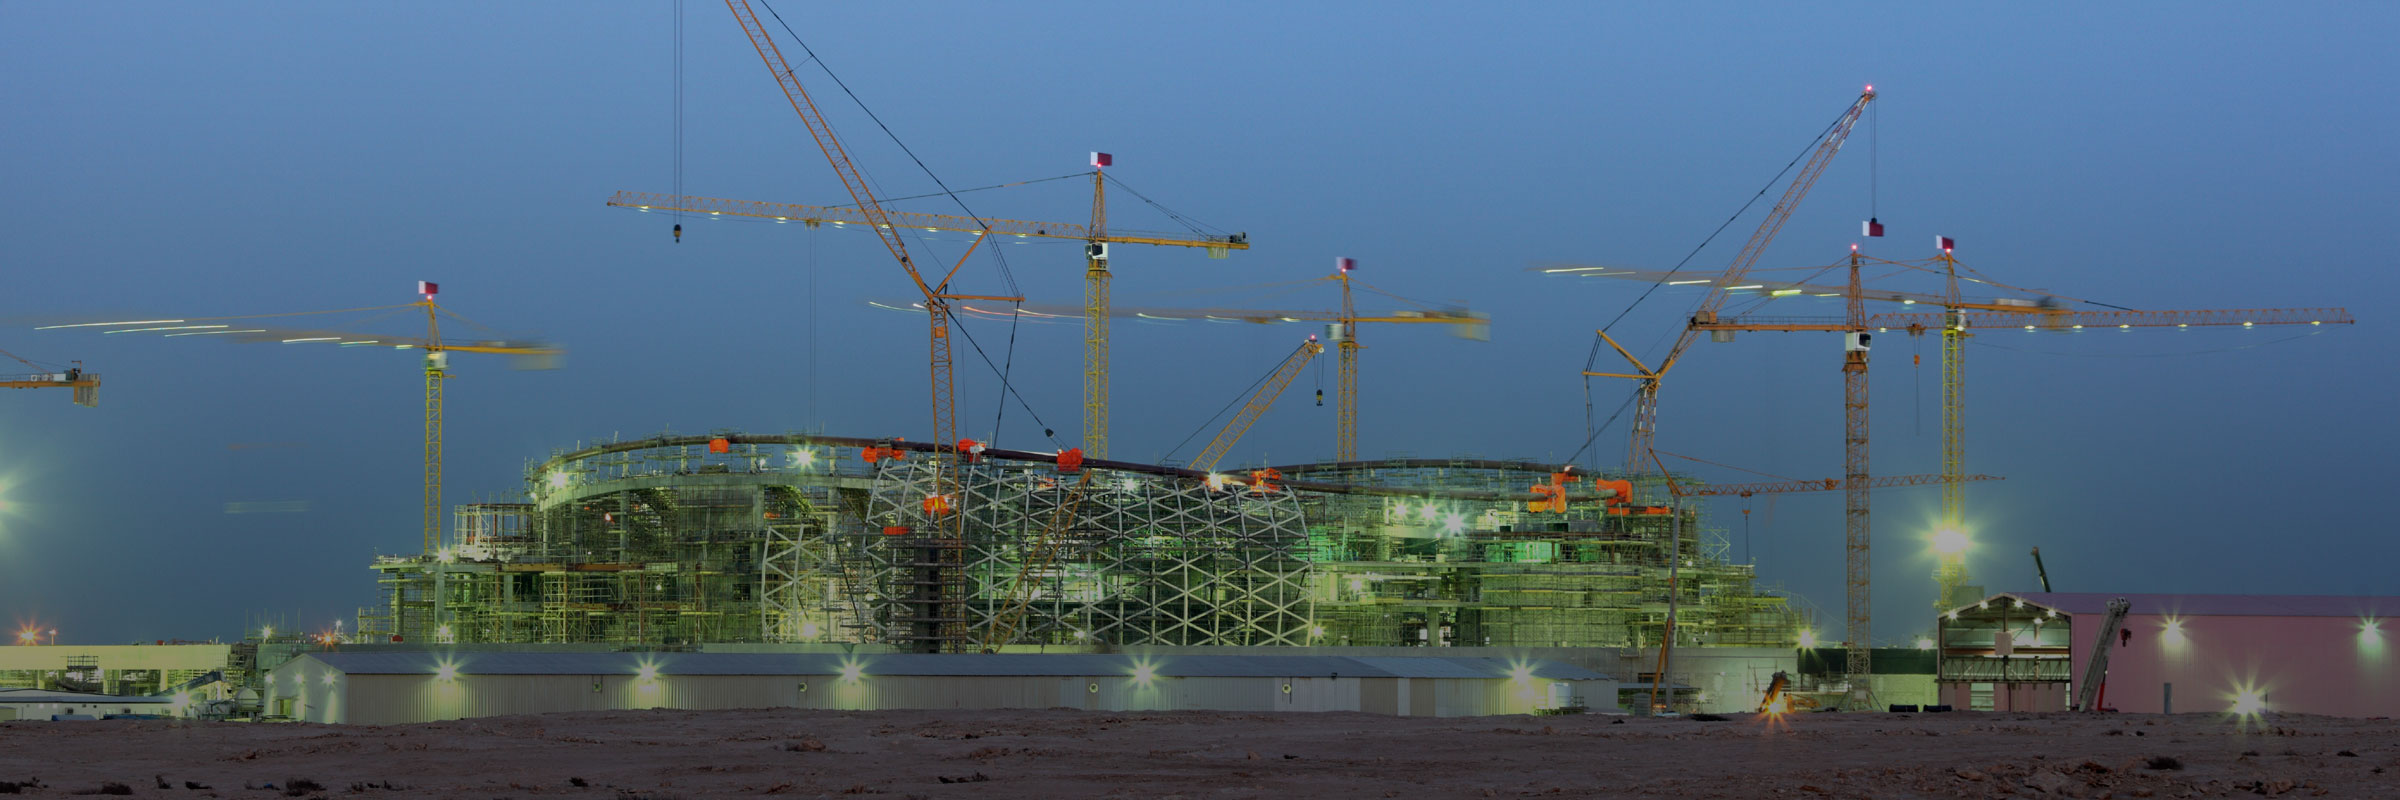 Industrials And Utilities: FIFA and Bribery in Qatar: It's Time to Approach Corruption and Human Rights Together